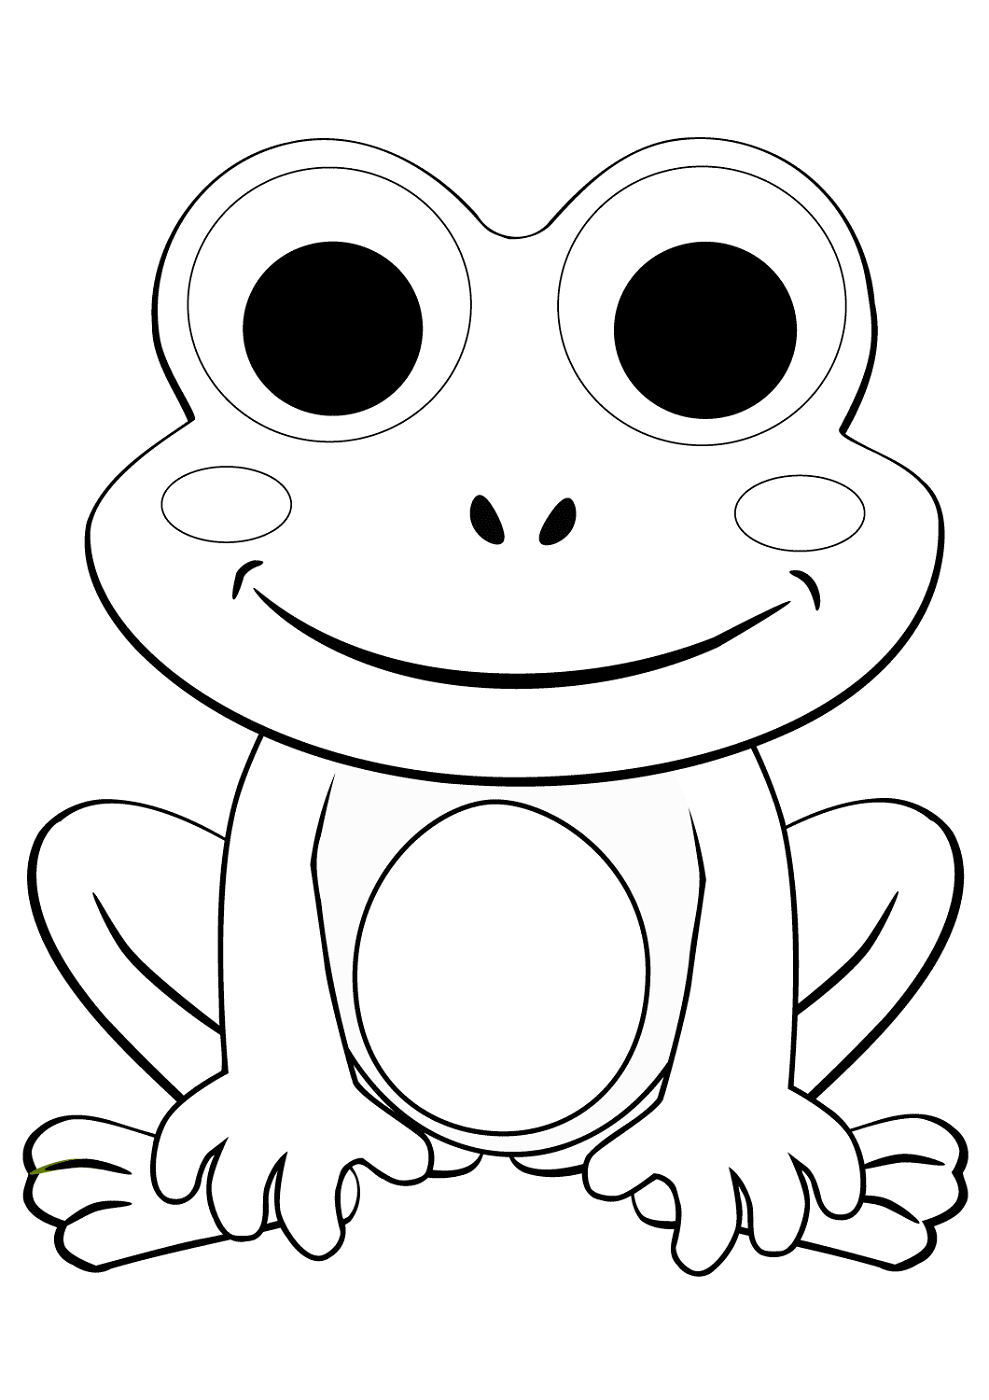 coloring images of frog free printable frog coloring pages for kids cool2bkids frog images of coloring